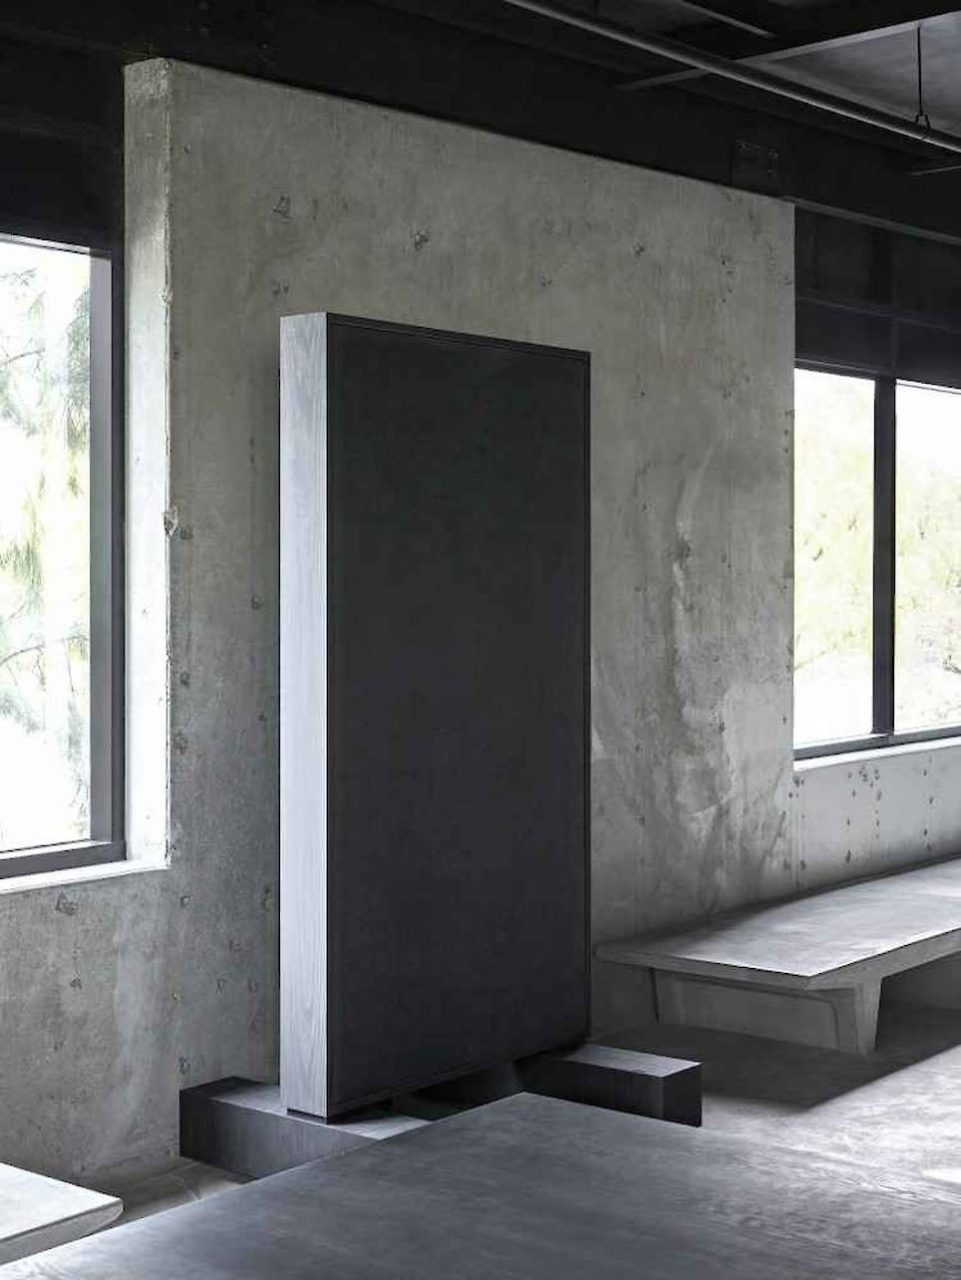 An upright black slab against concrete